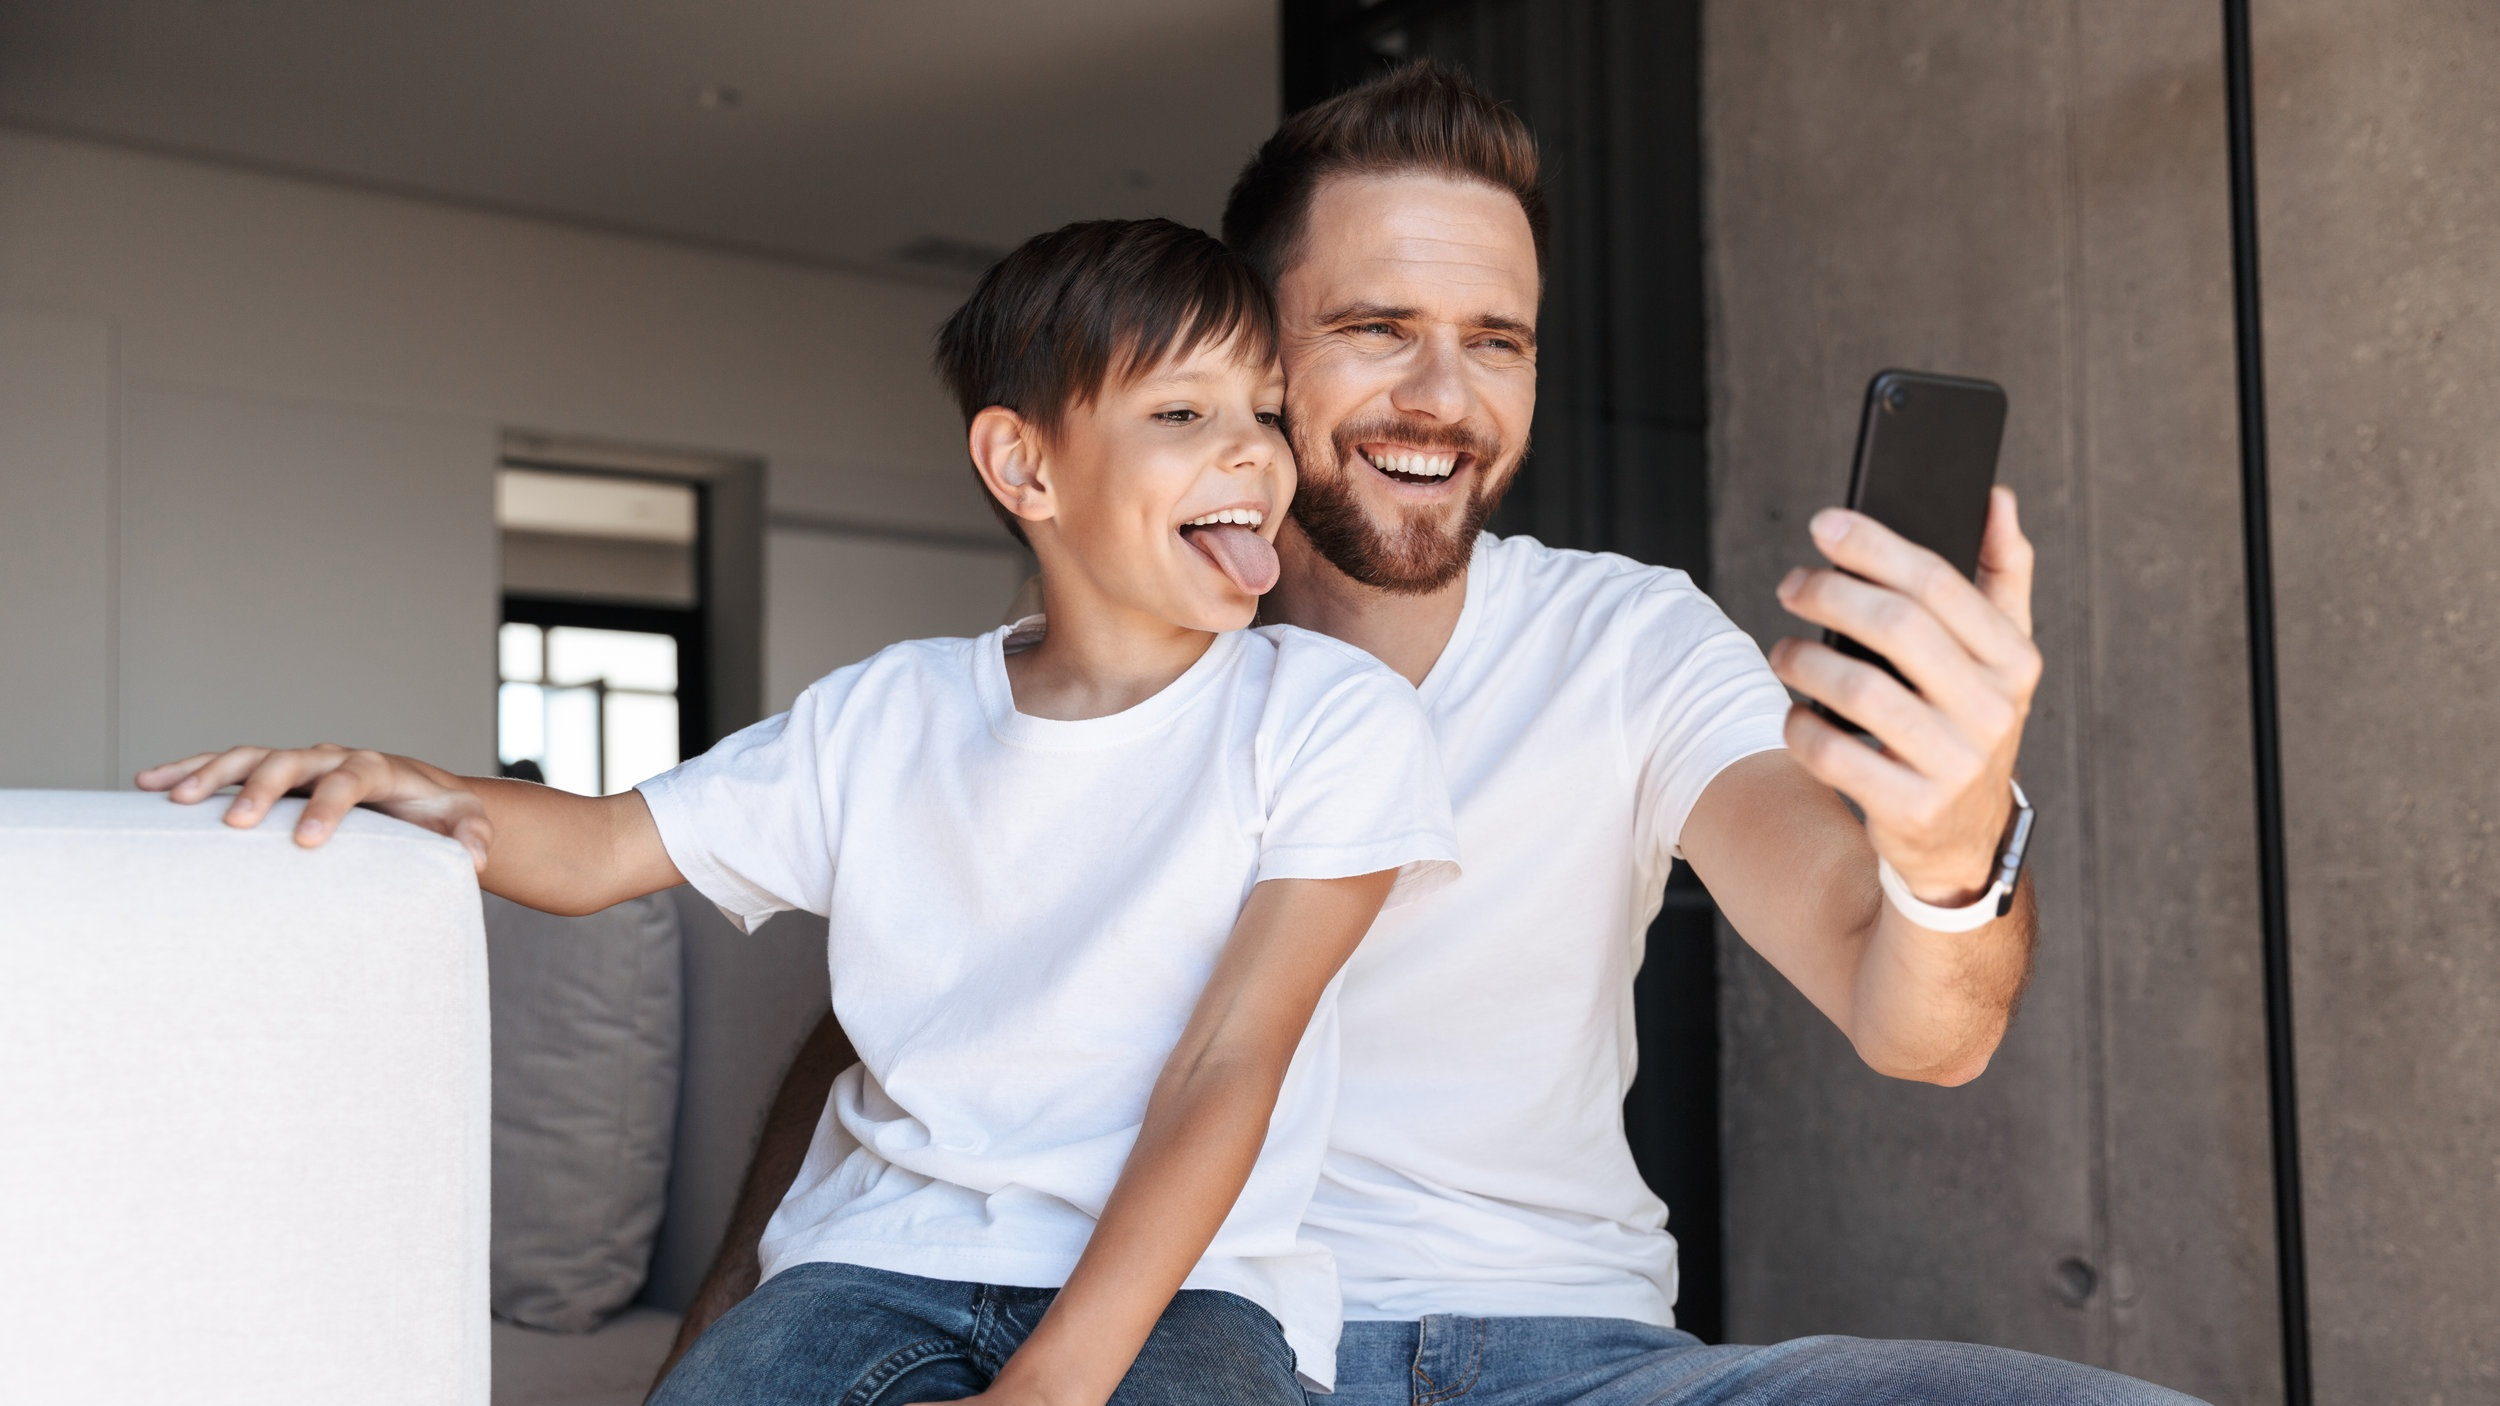 cheerful-young-man-father-dad-using-mobile-phone-2NQM7HD.jpg